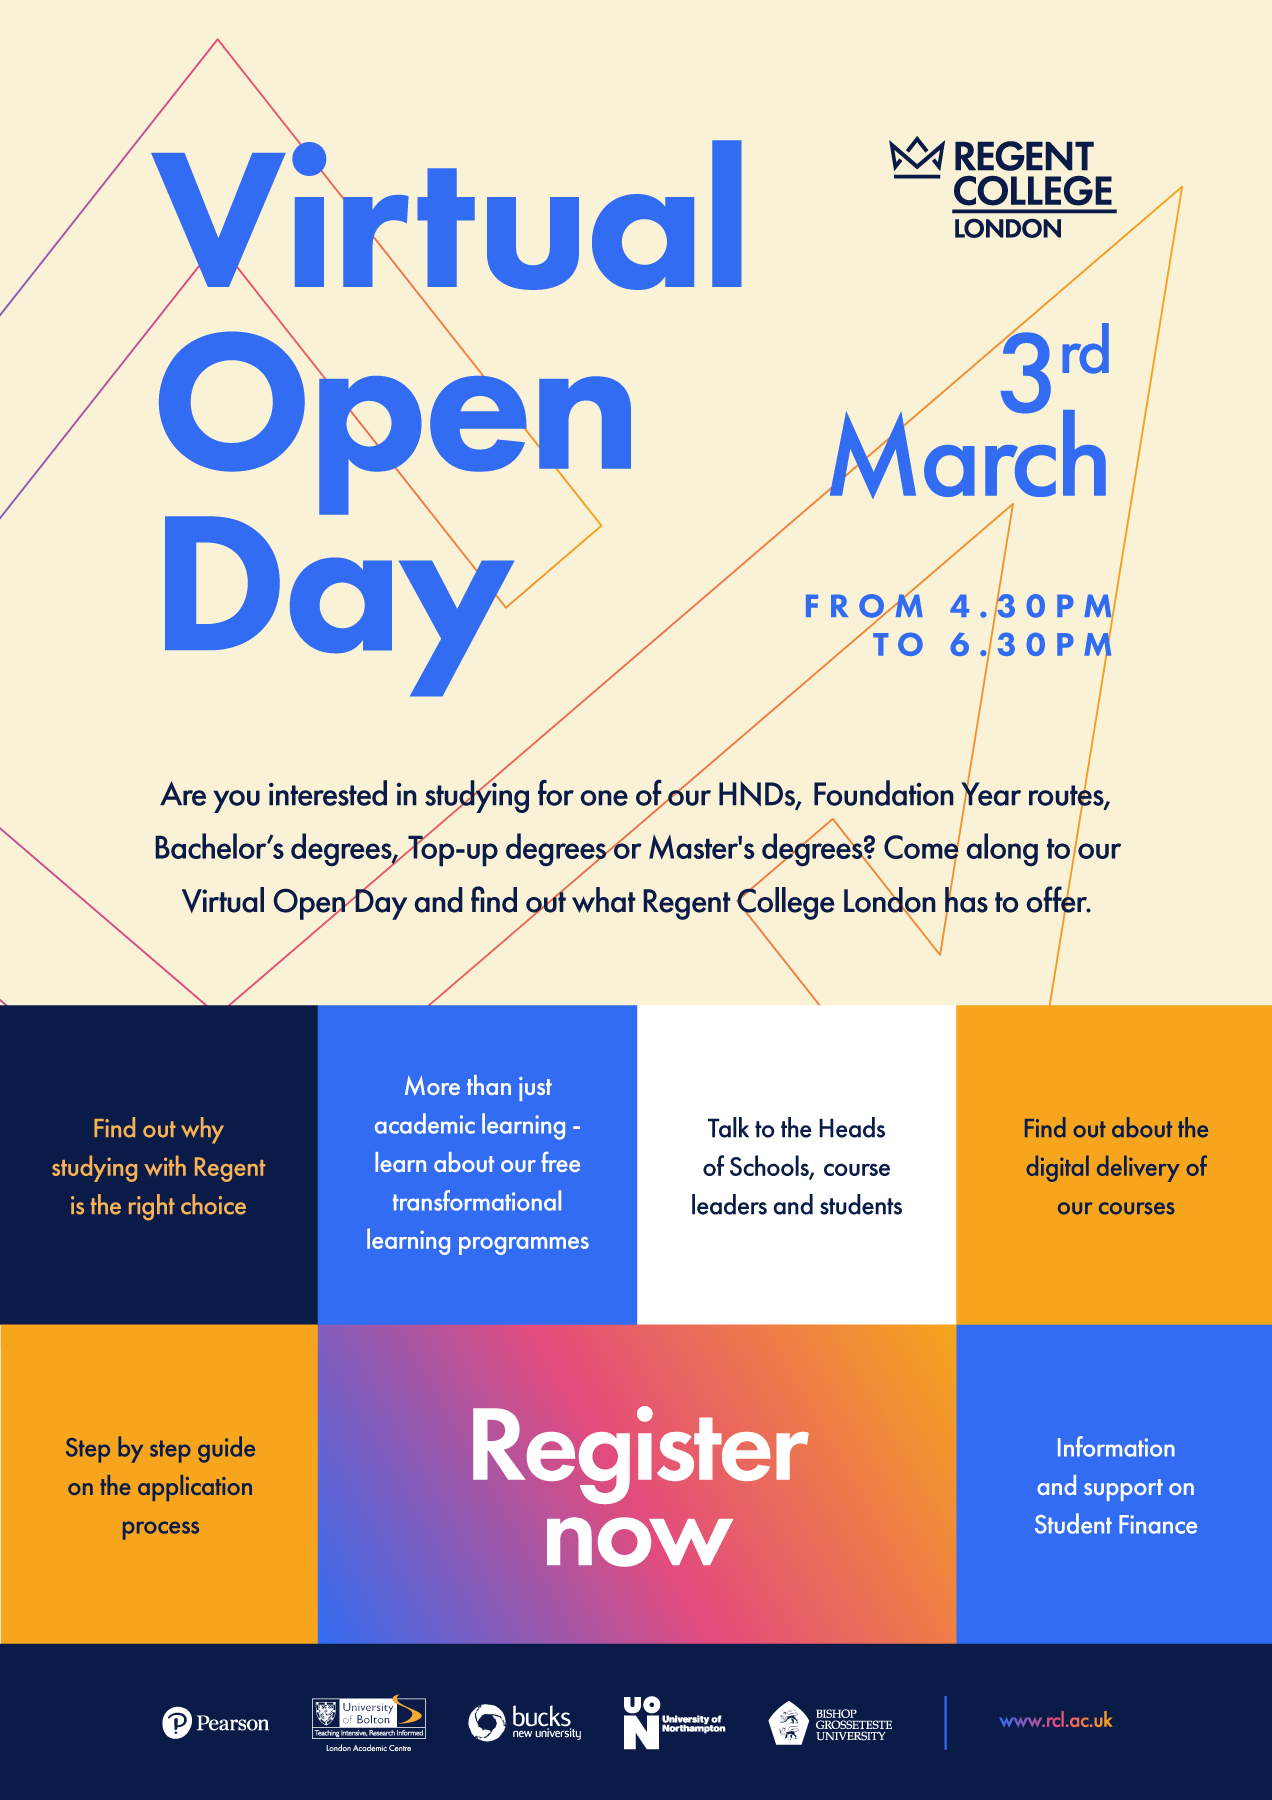 Why attend a Virtual Open Day - Regent College?